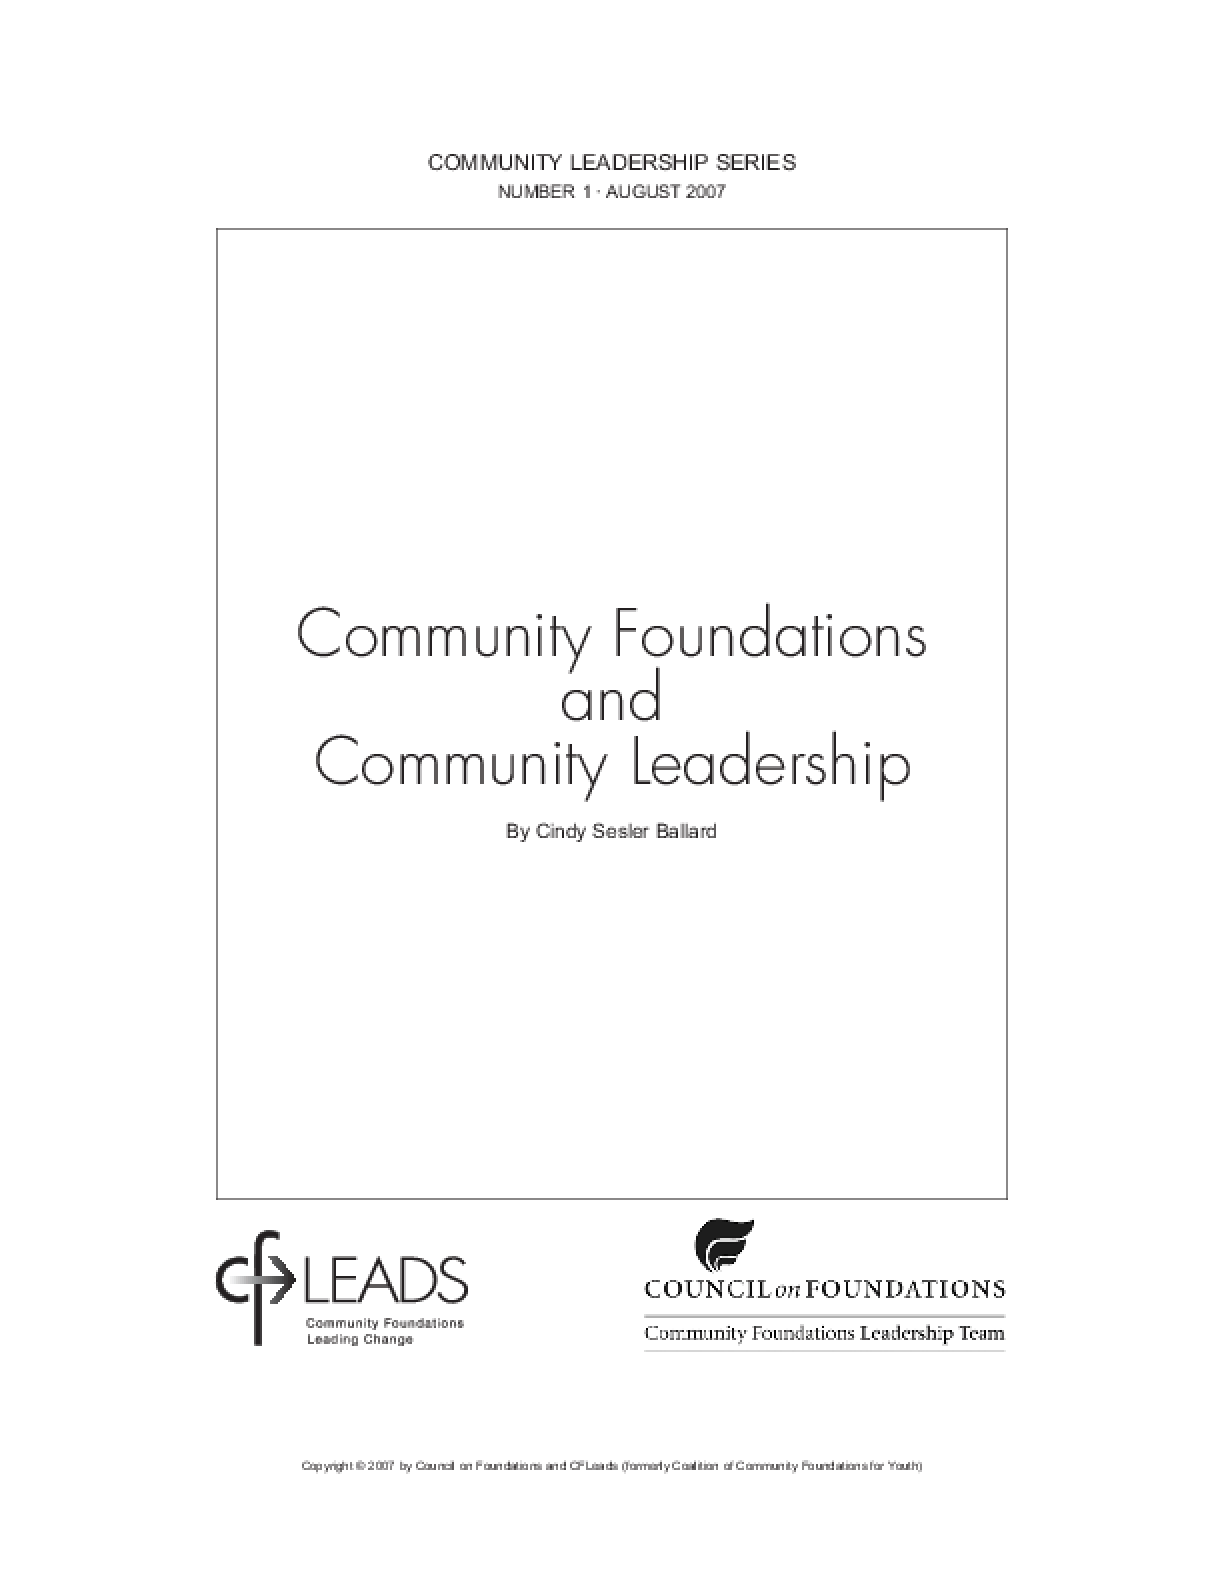 Community Foundations and Community Leadership